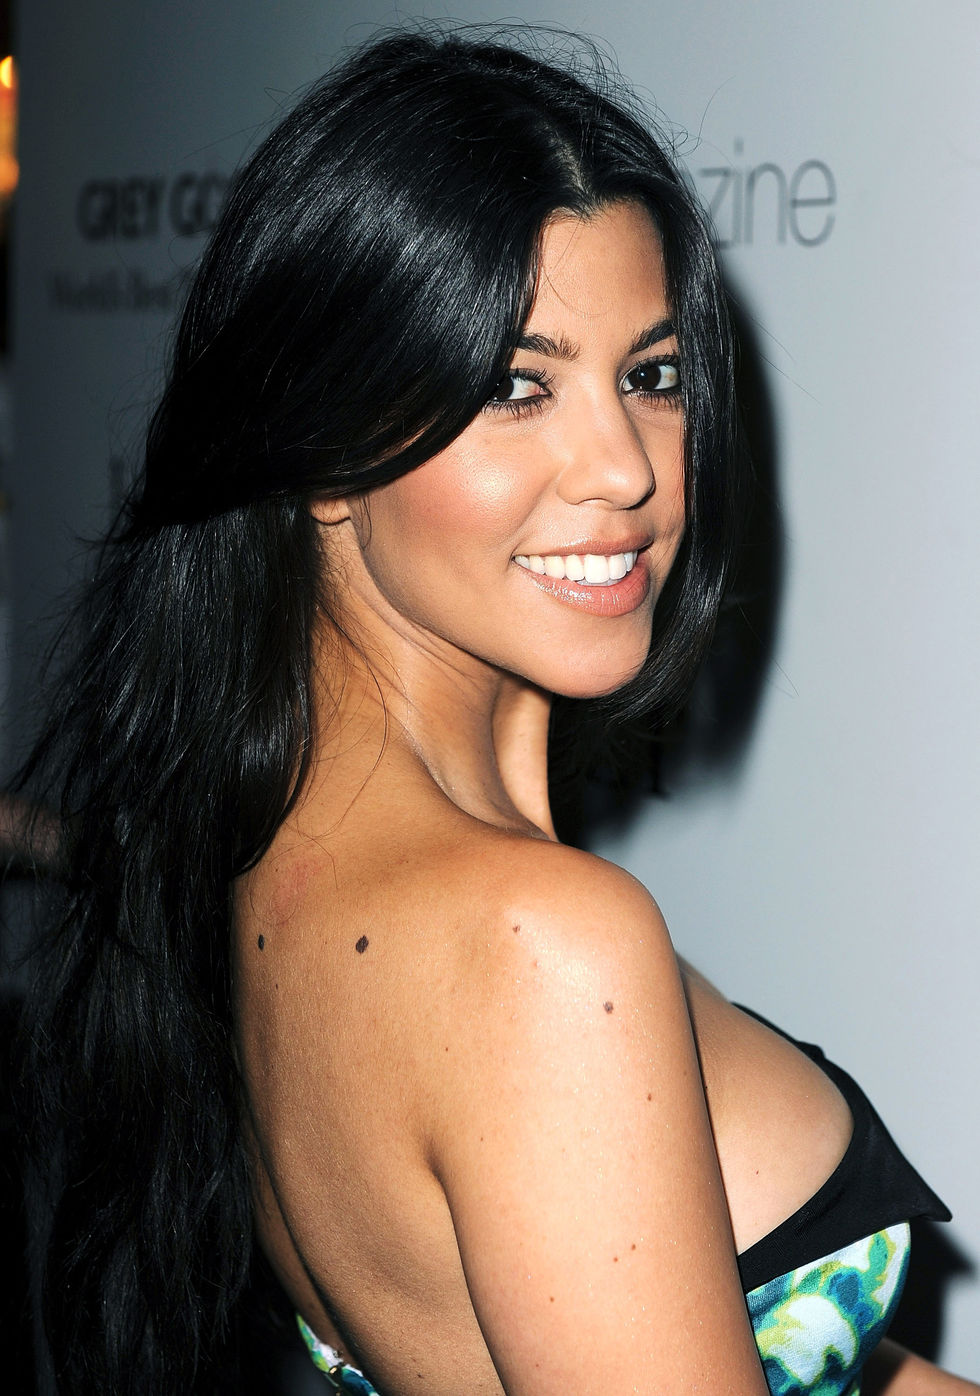 kourtney-kardashian-hosting-944-magazine-issue-release-party-01